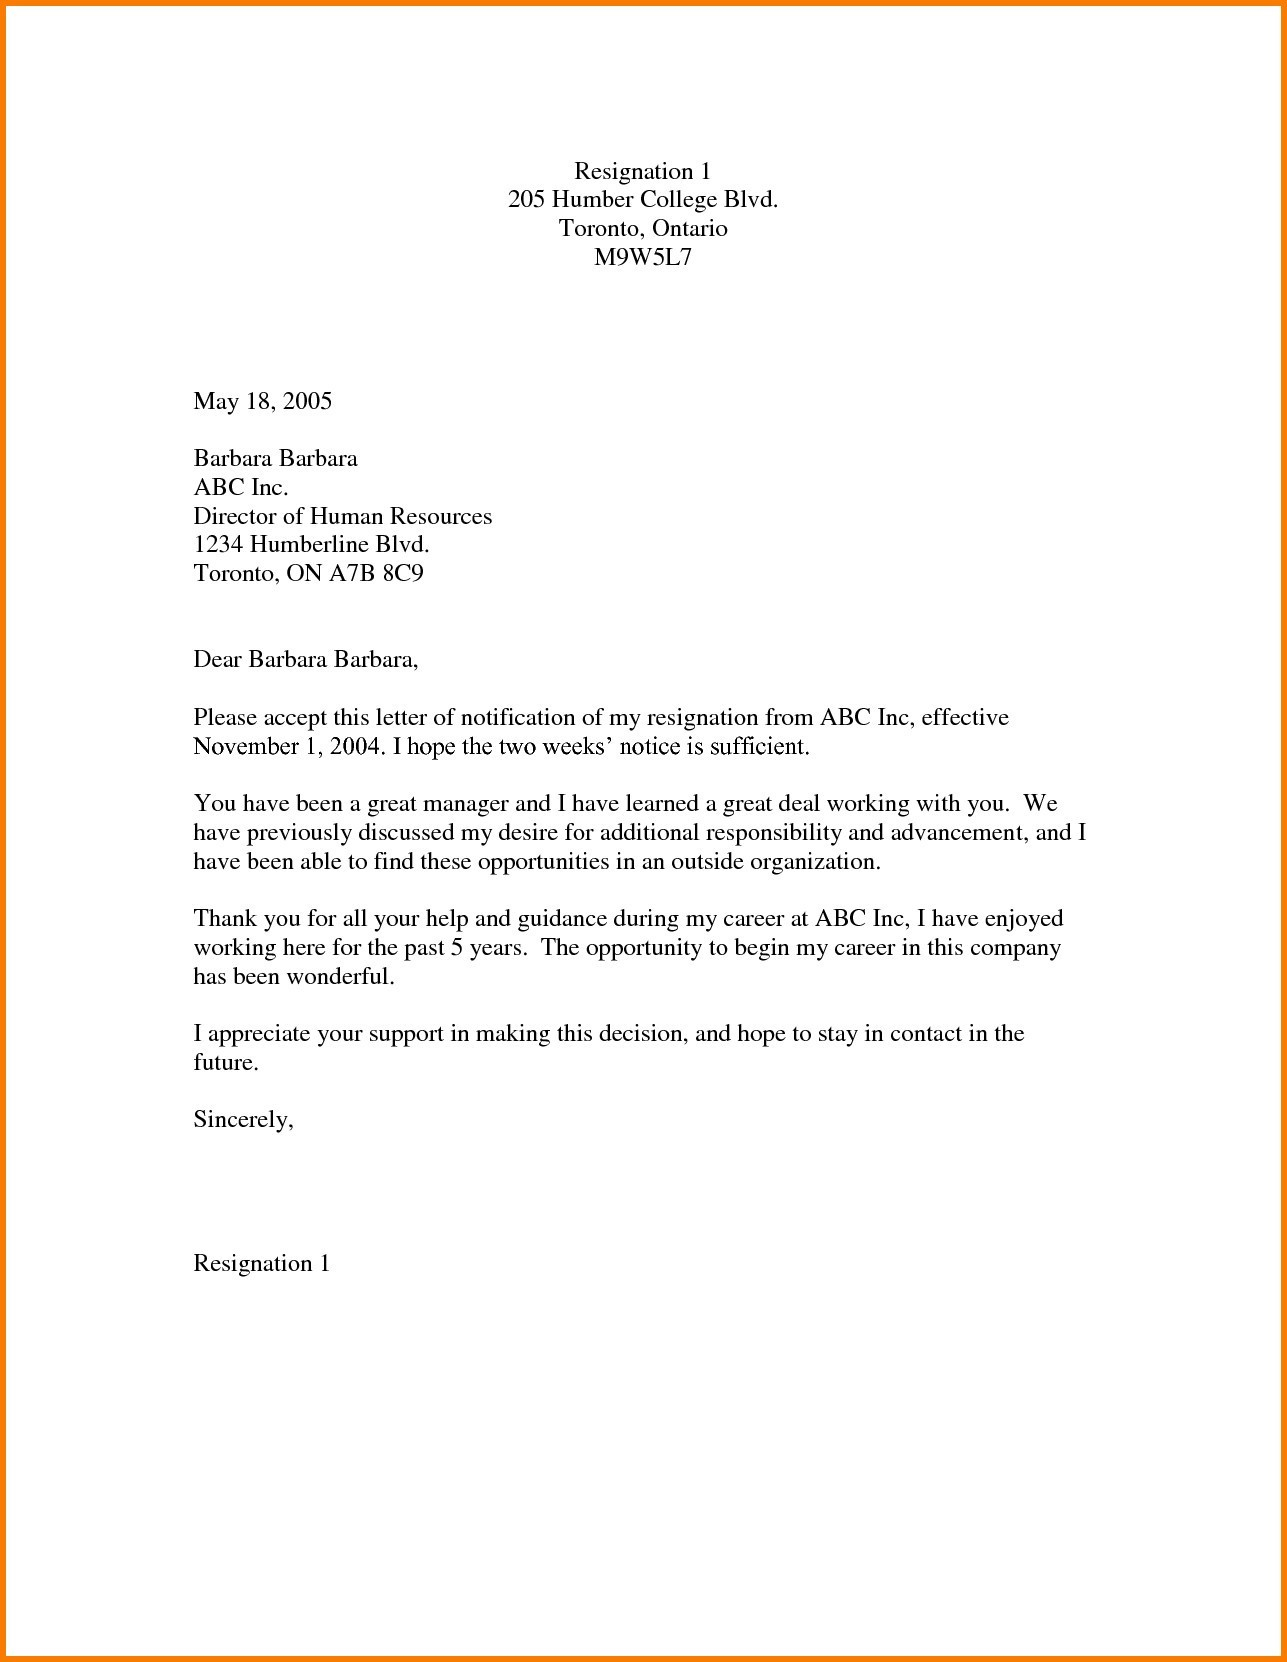 Debt Collection Letter Template - Debt Collection Letter Templates Free